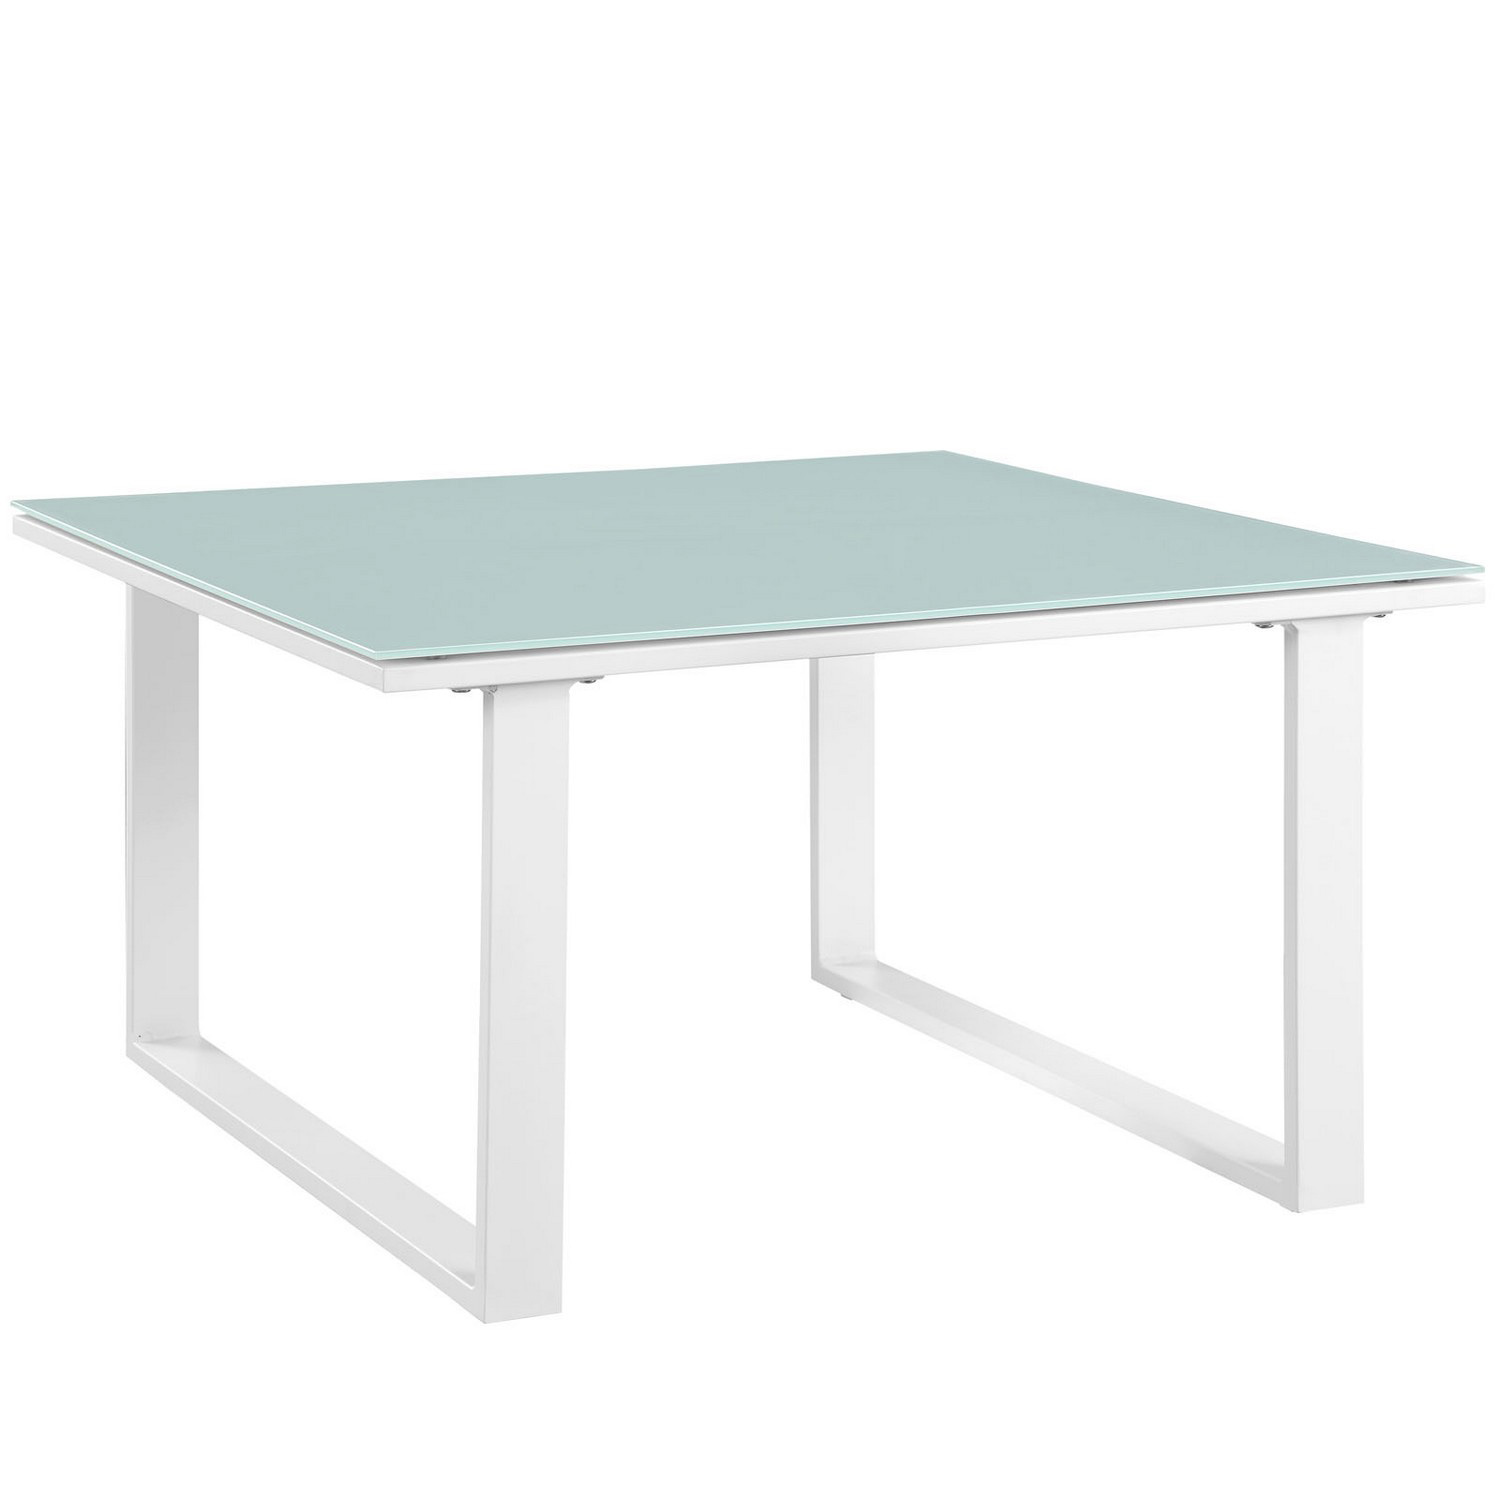 Modway Fortuna Outdoor Patio Side Table - White